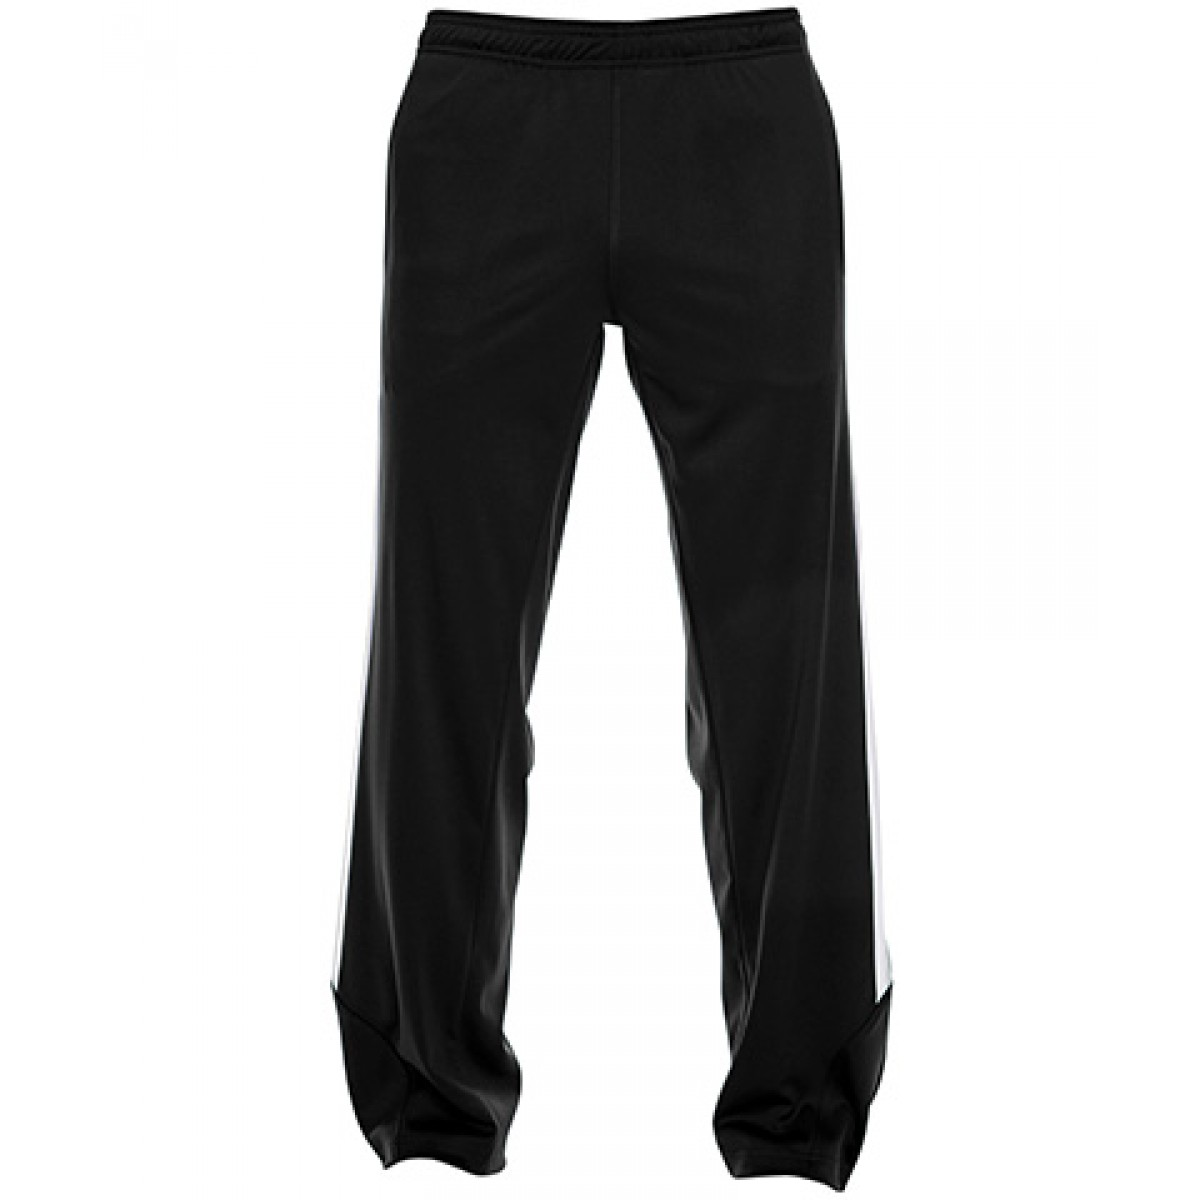 Men's Elite Performance Fleece Pant-Black-M